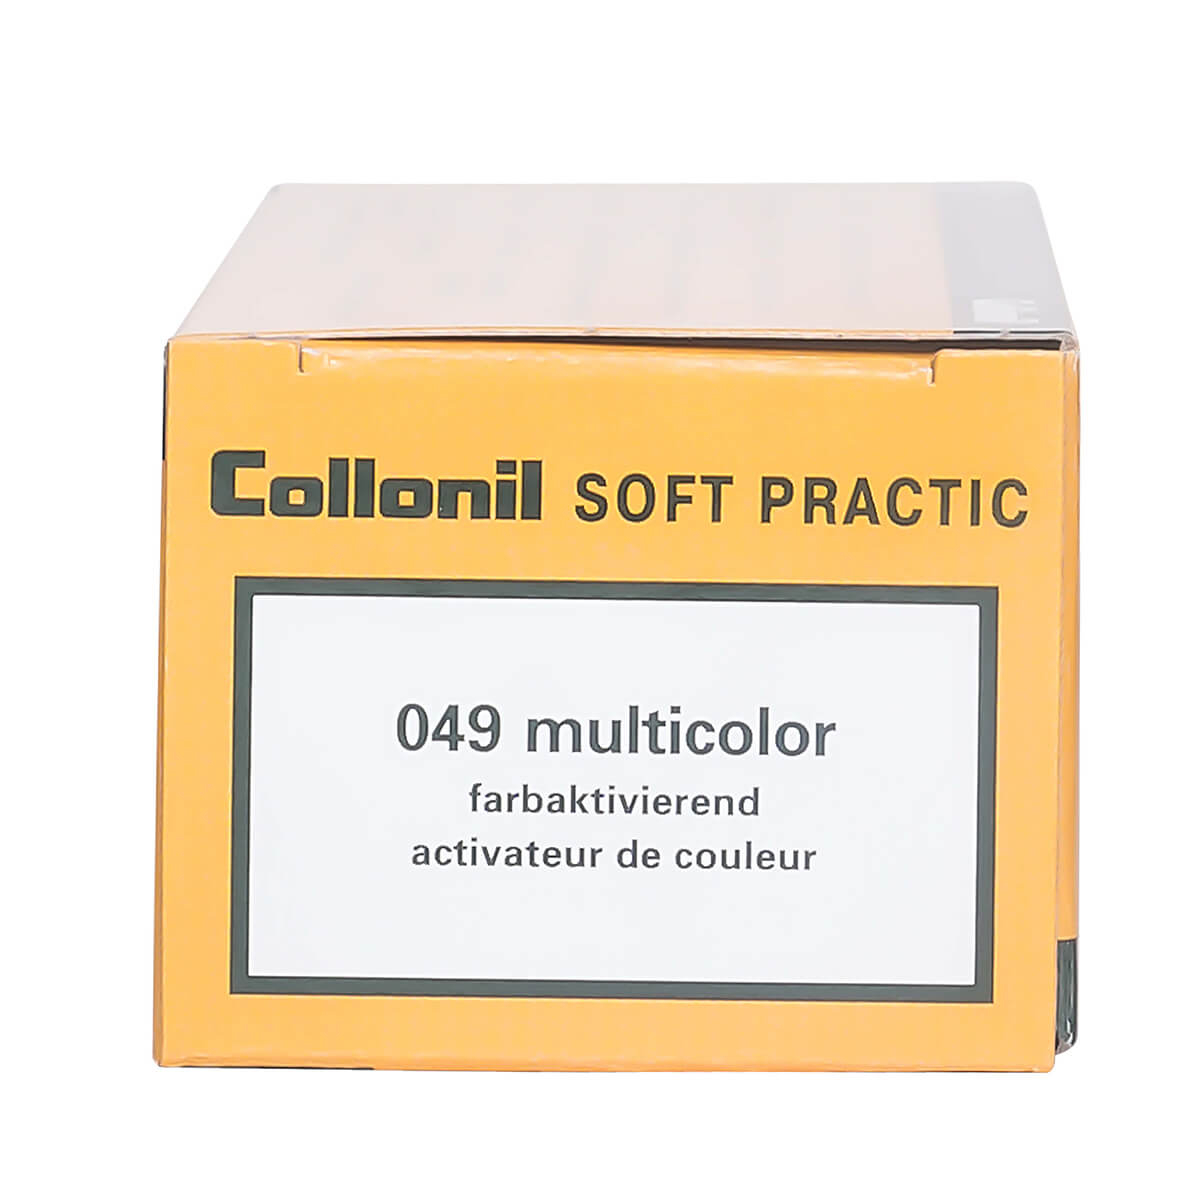 Collonil Creme SOFT PRACTIC Multicolor